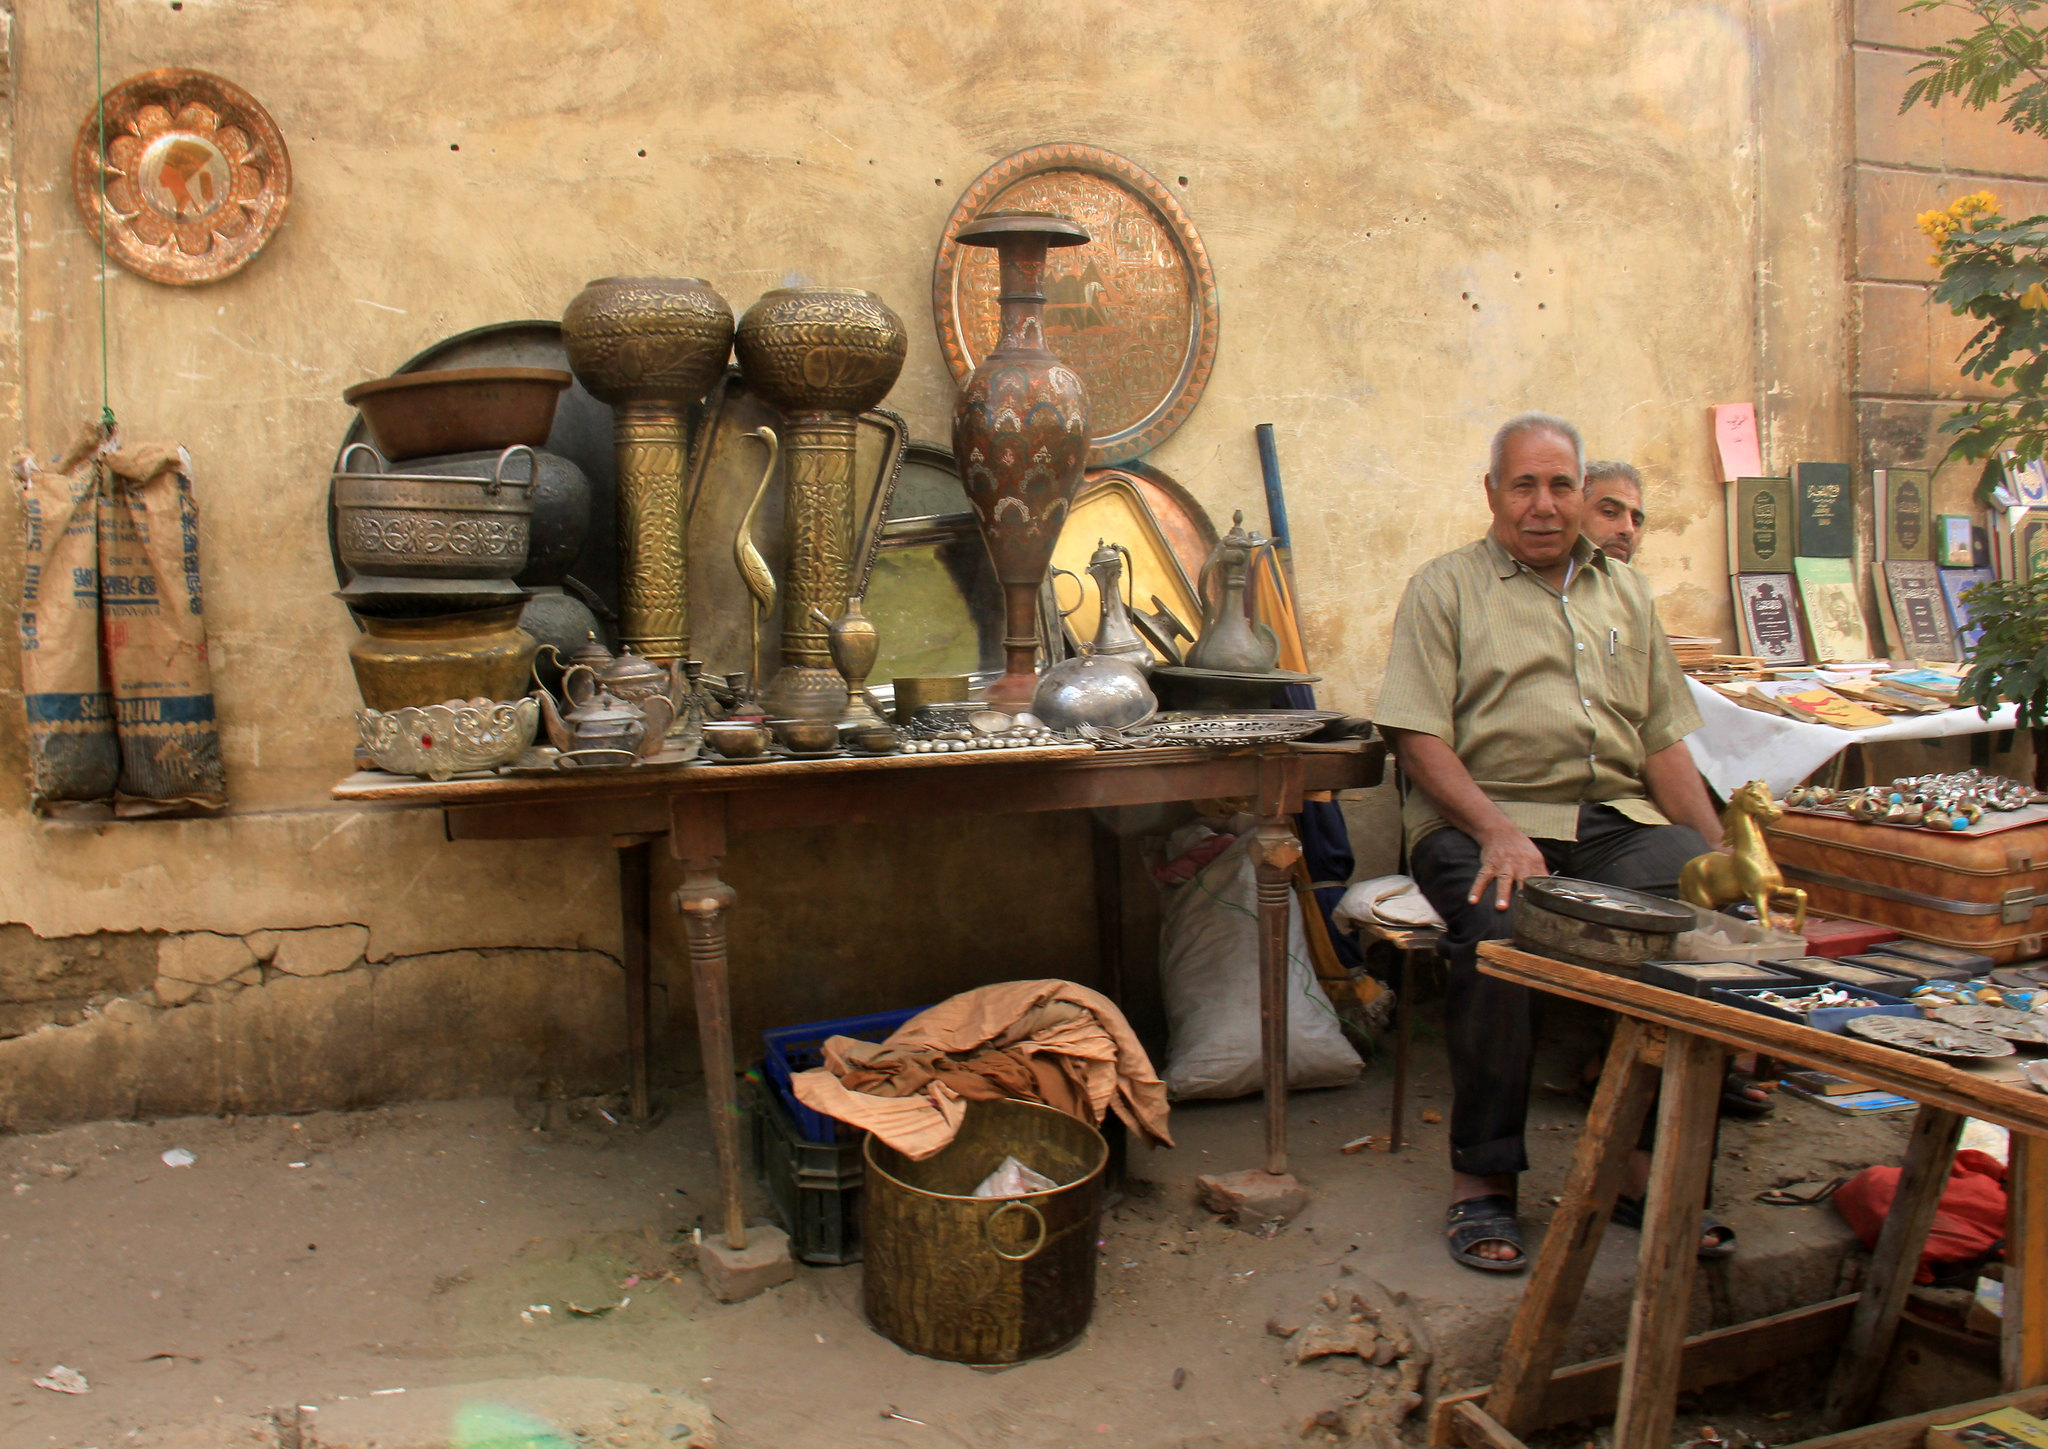 Hunt for antique at flea market of souq al goma